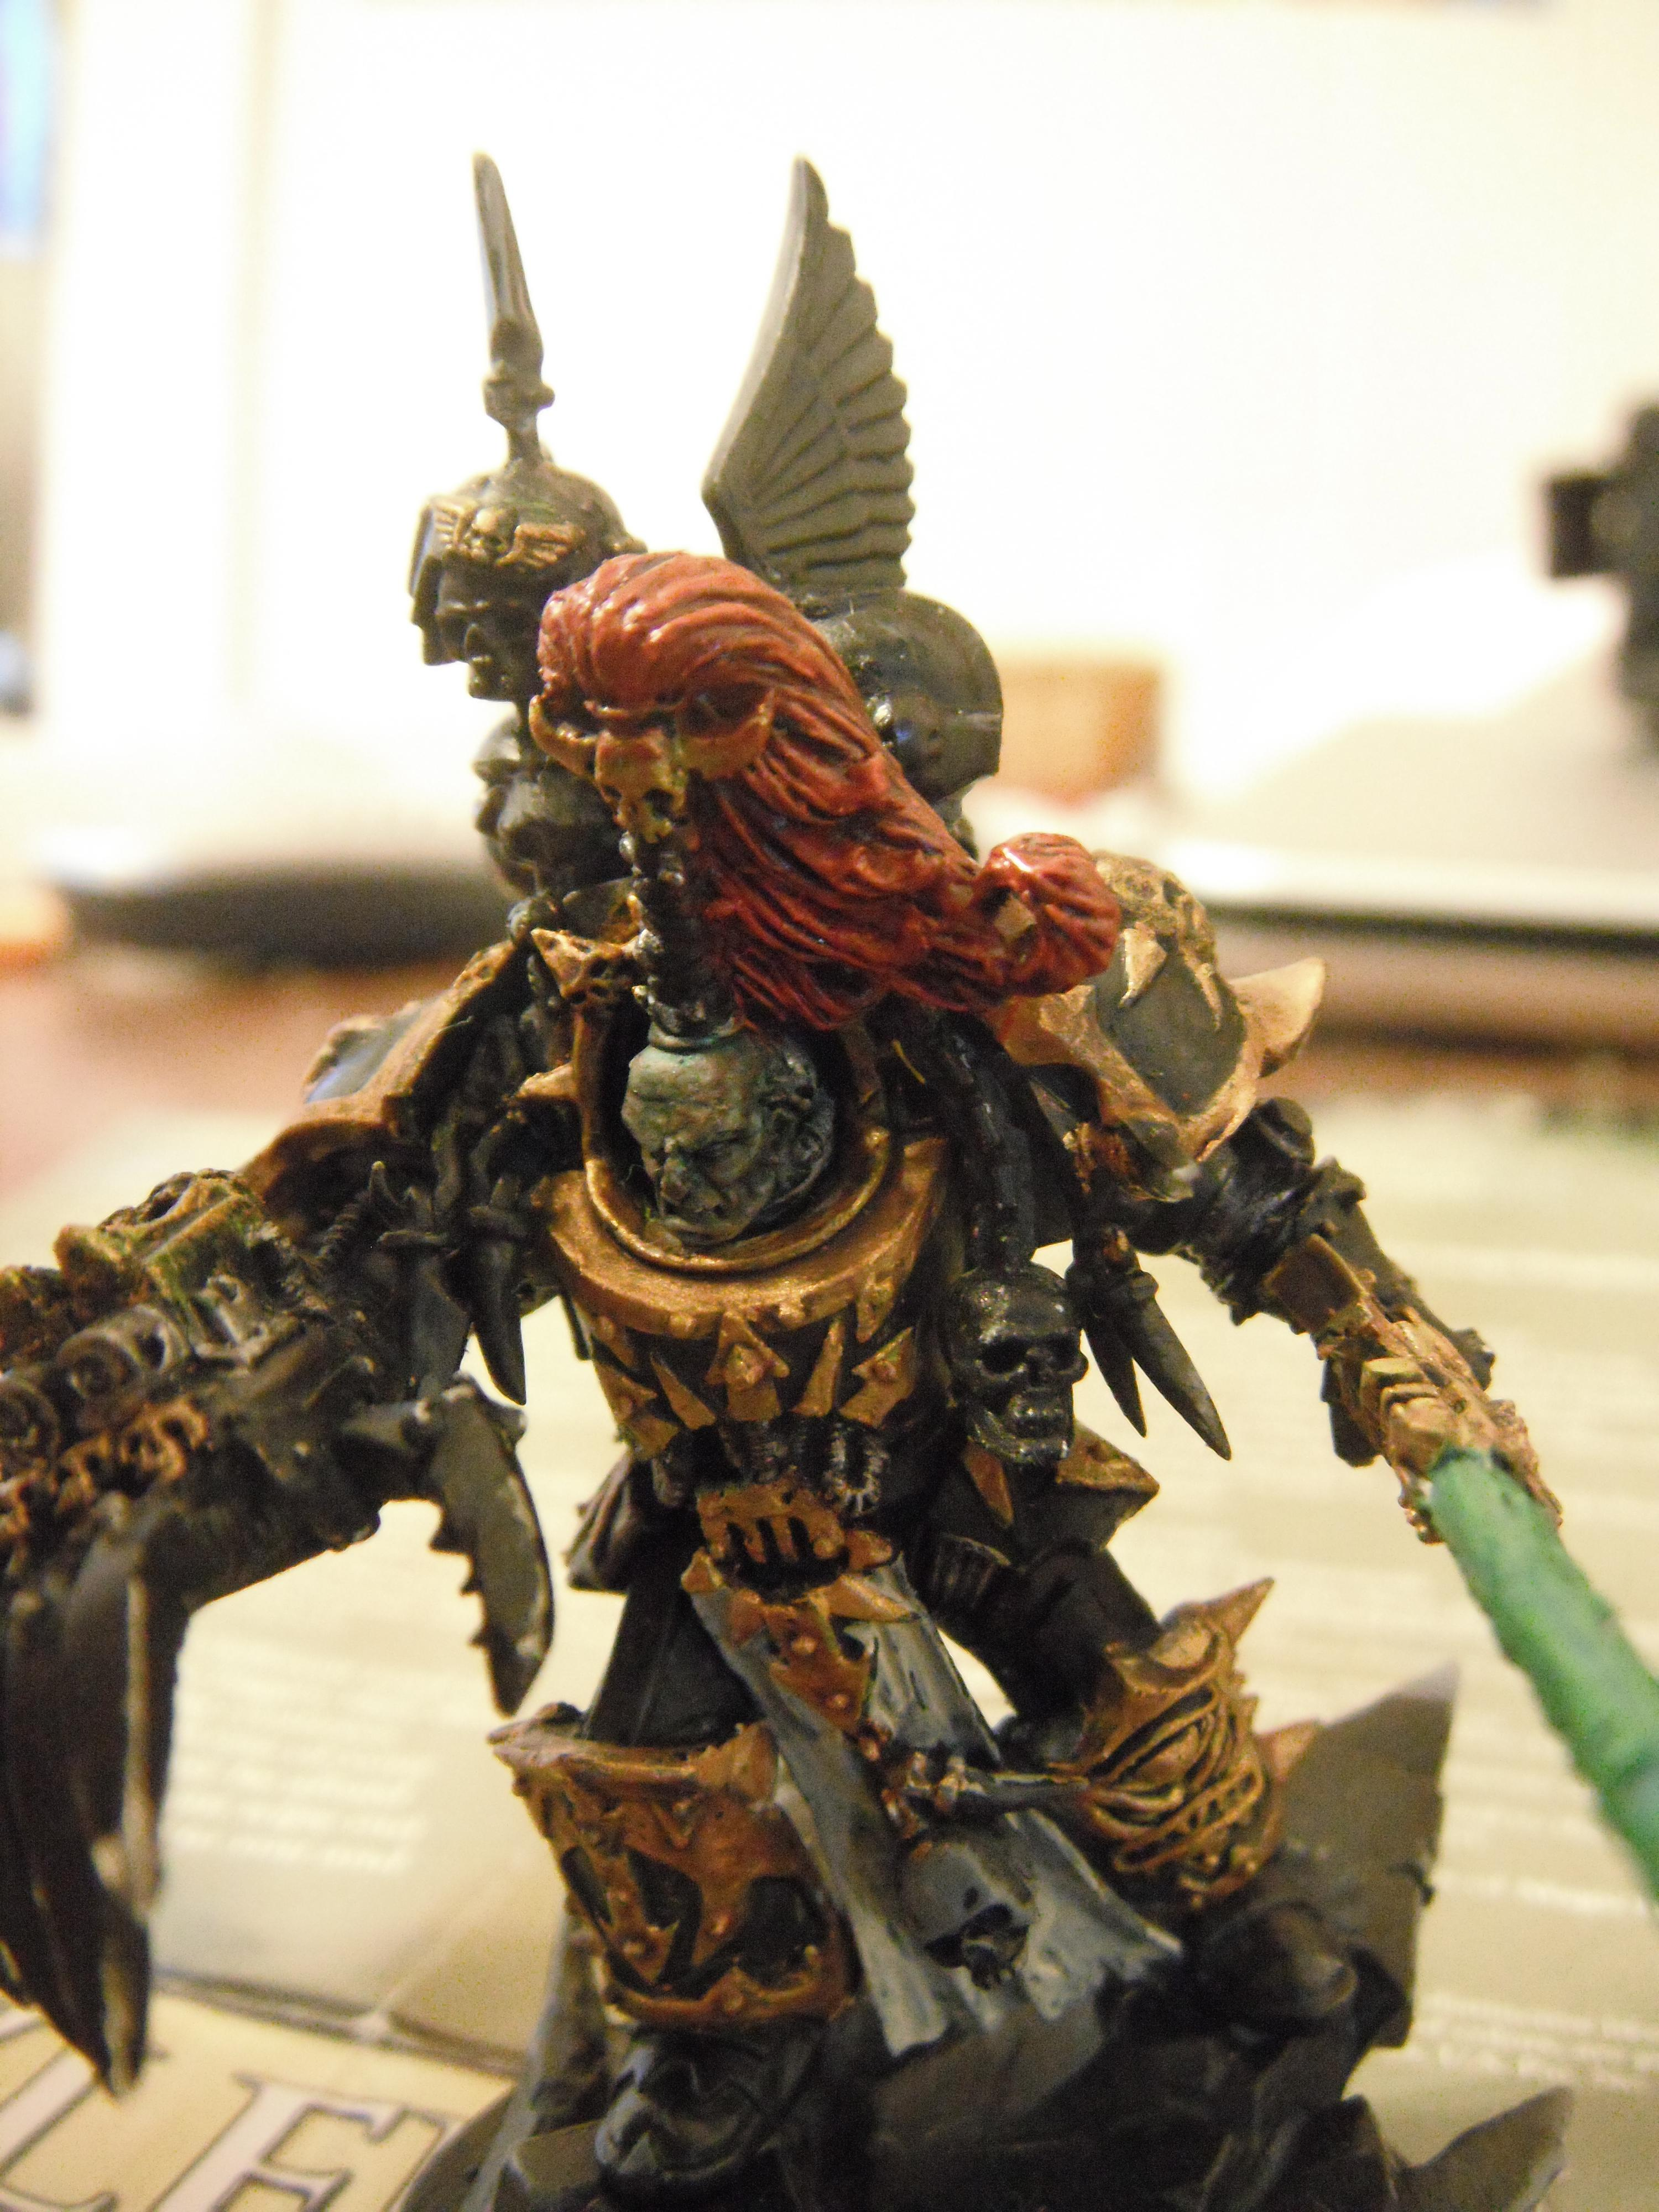 Abaddon, Abaddon The Despoiler, Black Legion, Chaos, Chaos Space Marines, Chaos Terminator Lord Conversion, Conversion